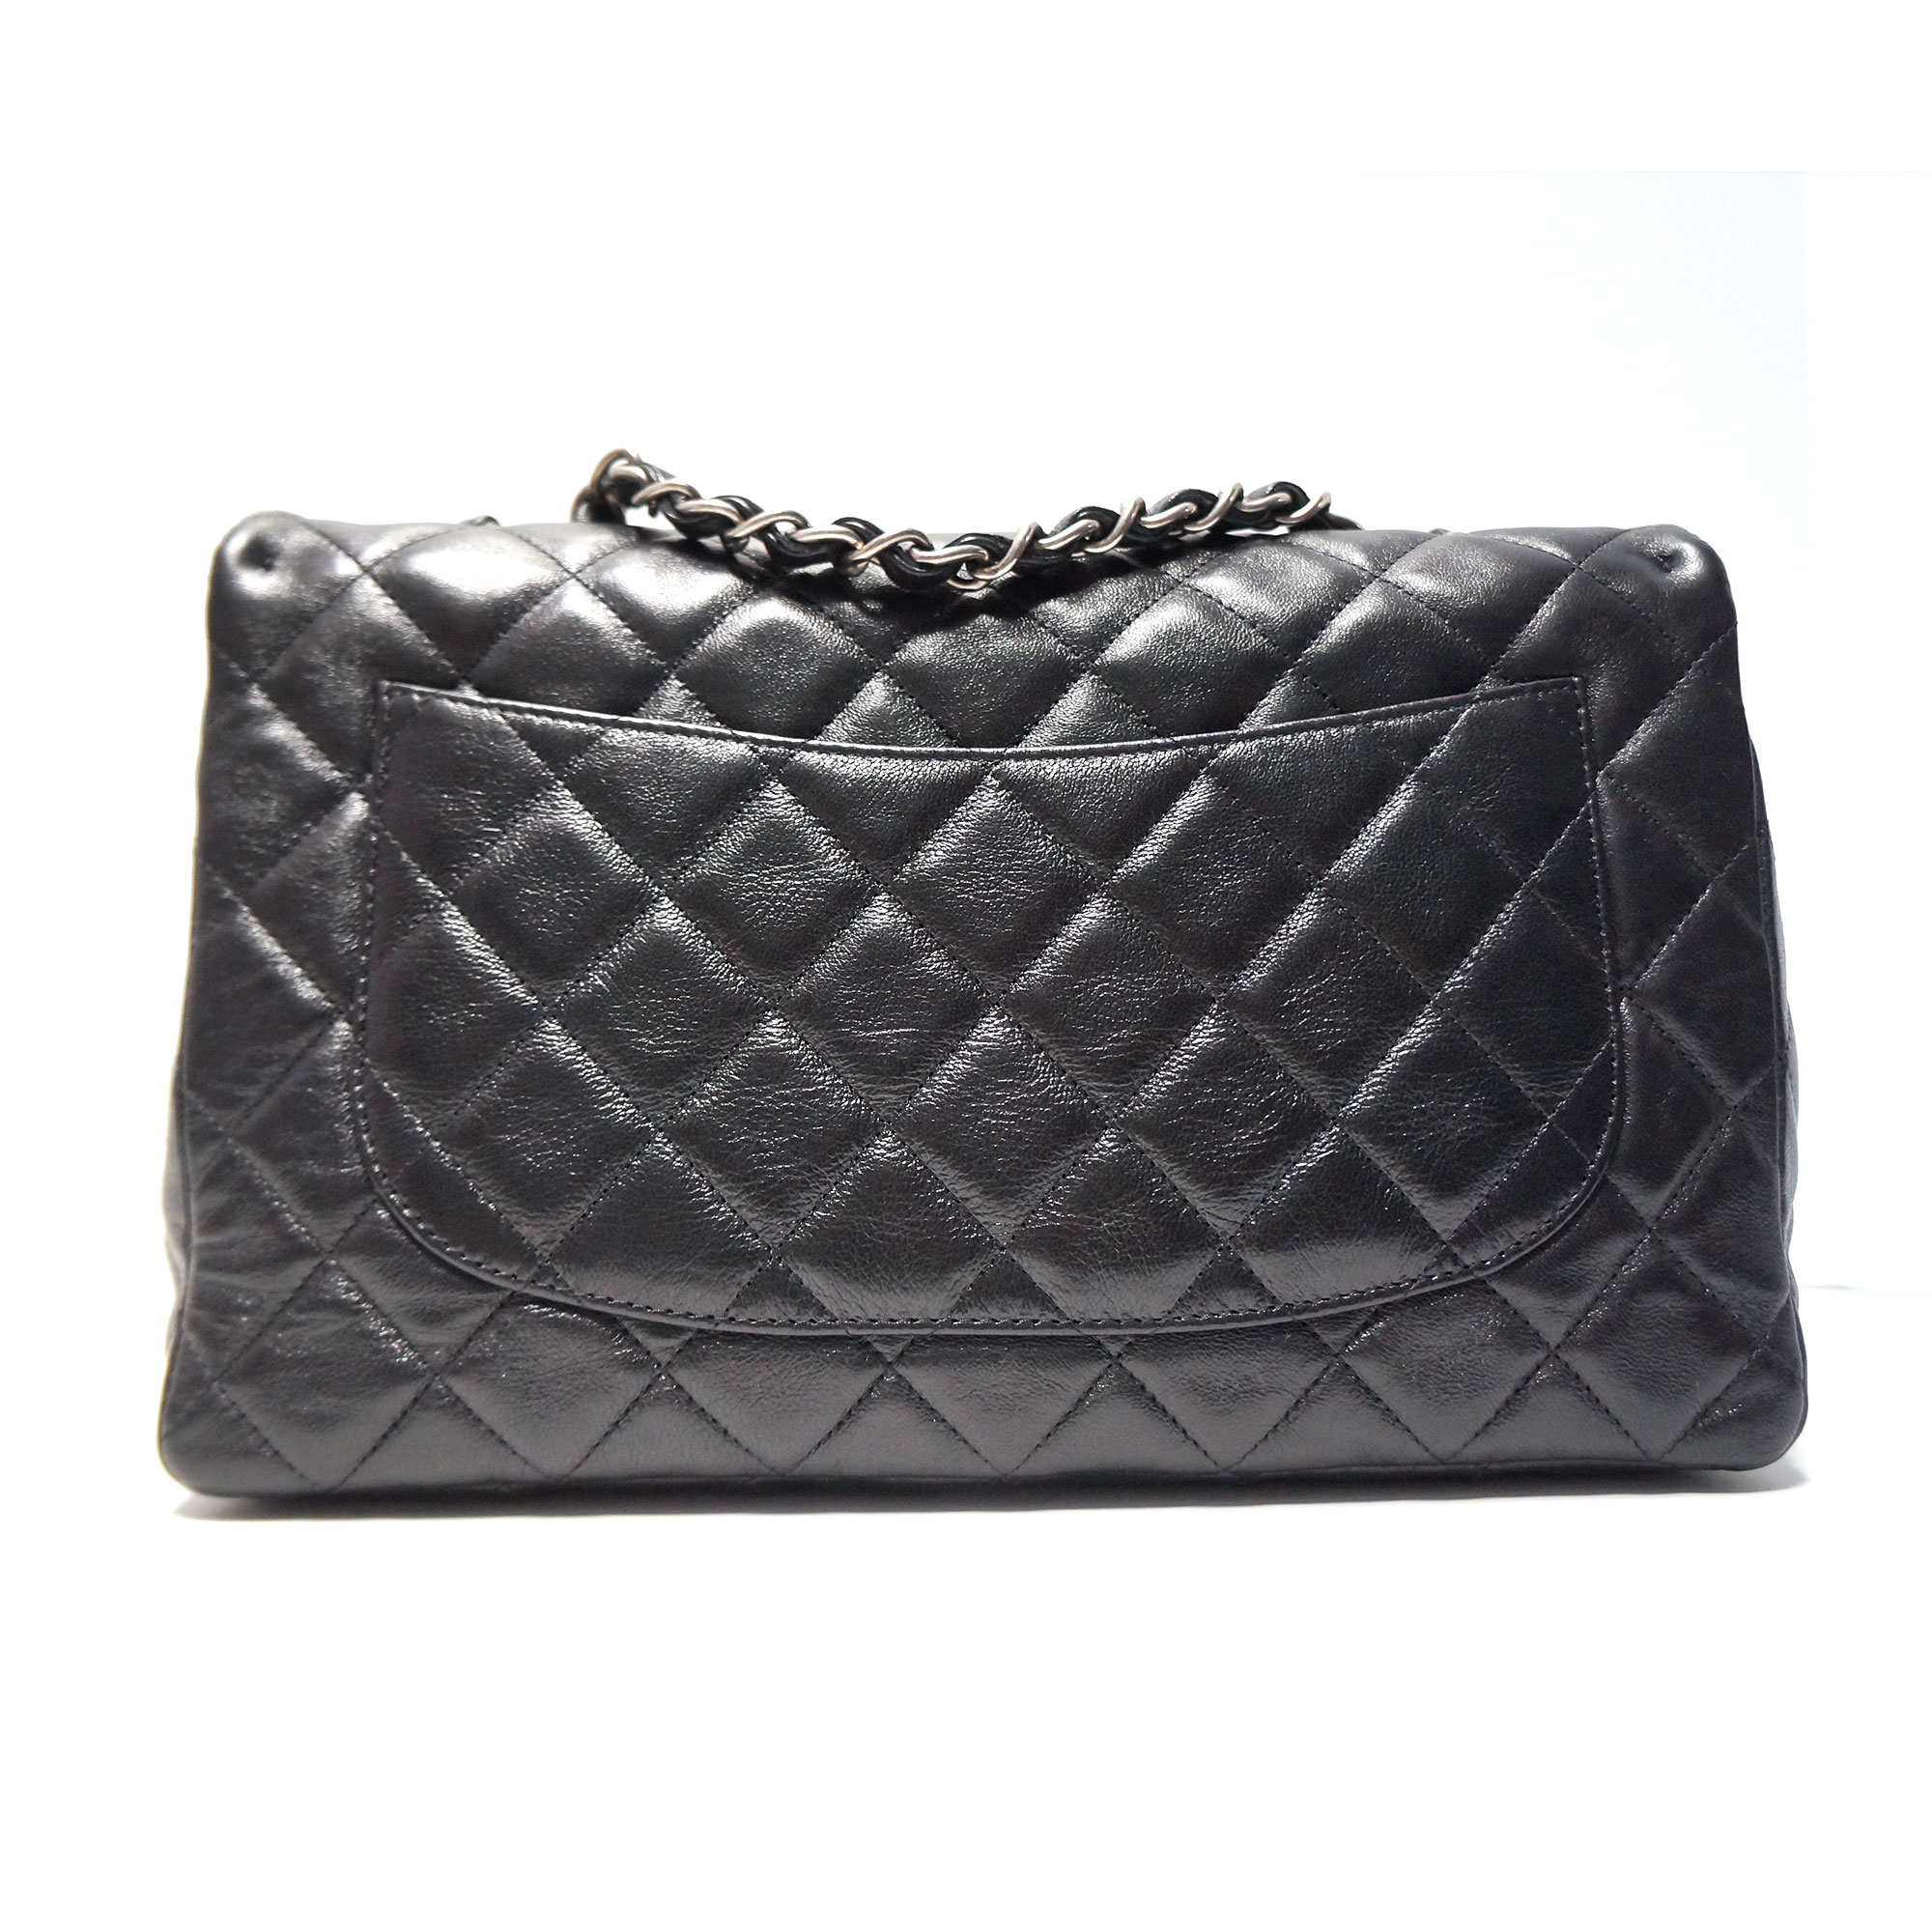 49e1c82415b0 Chanel Black Leather Jumbo Flap Bag with 2.55 Lock     My Personal ...